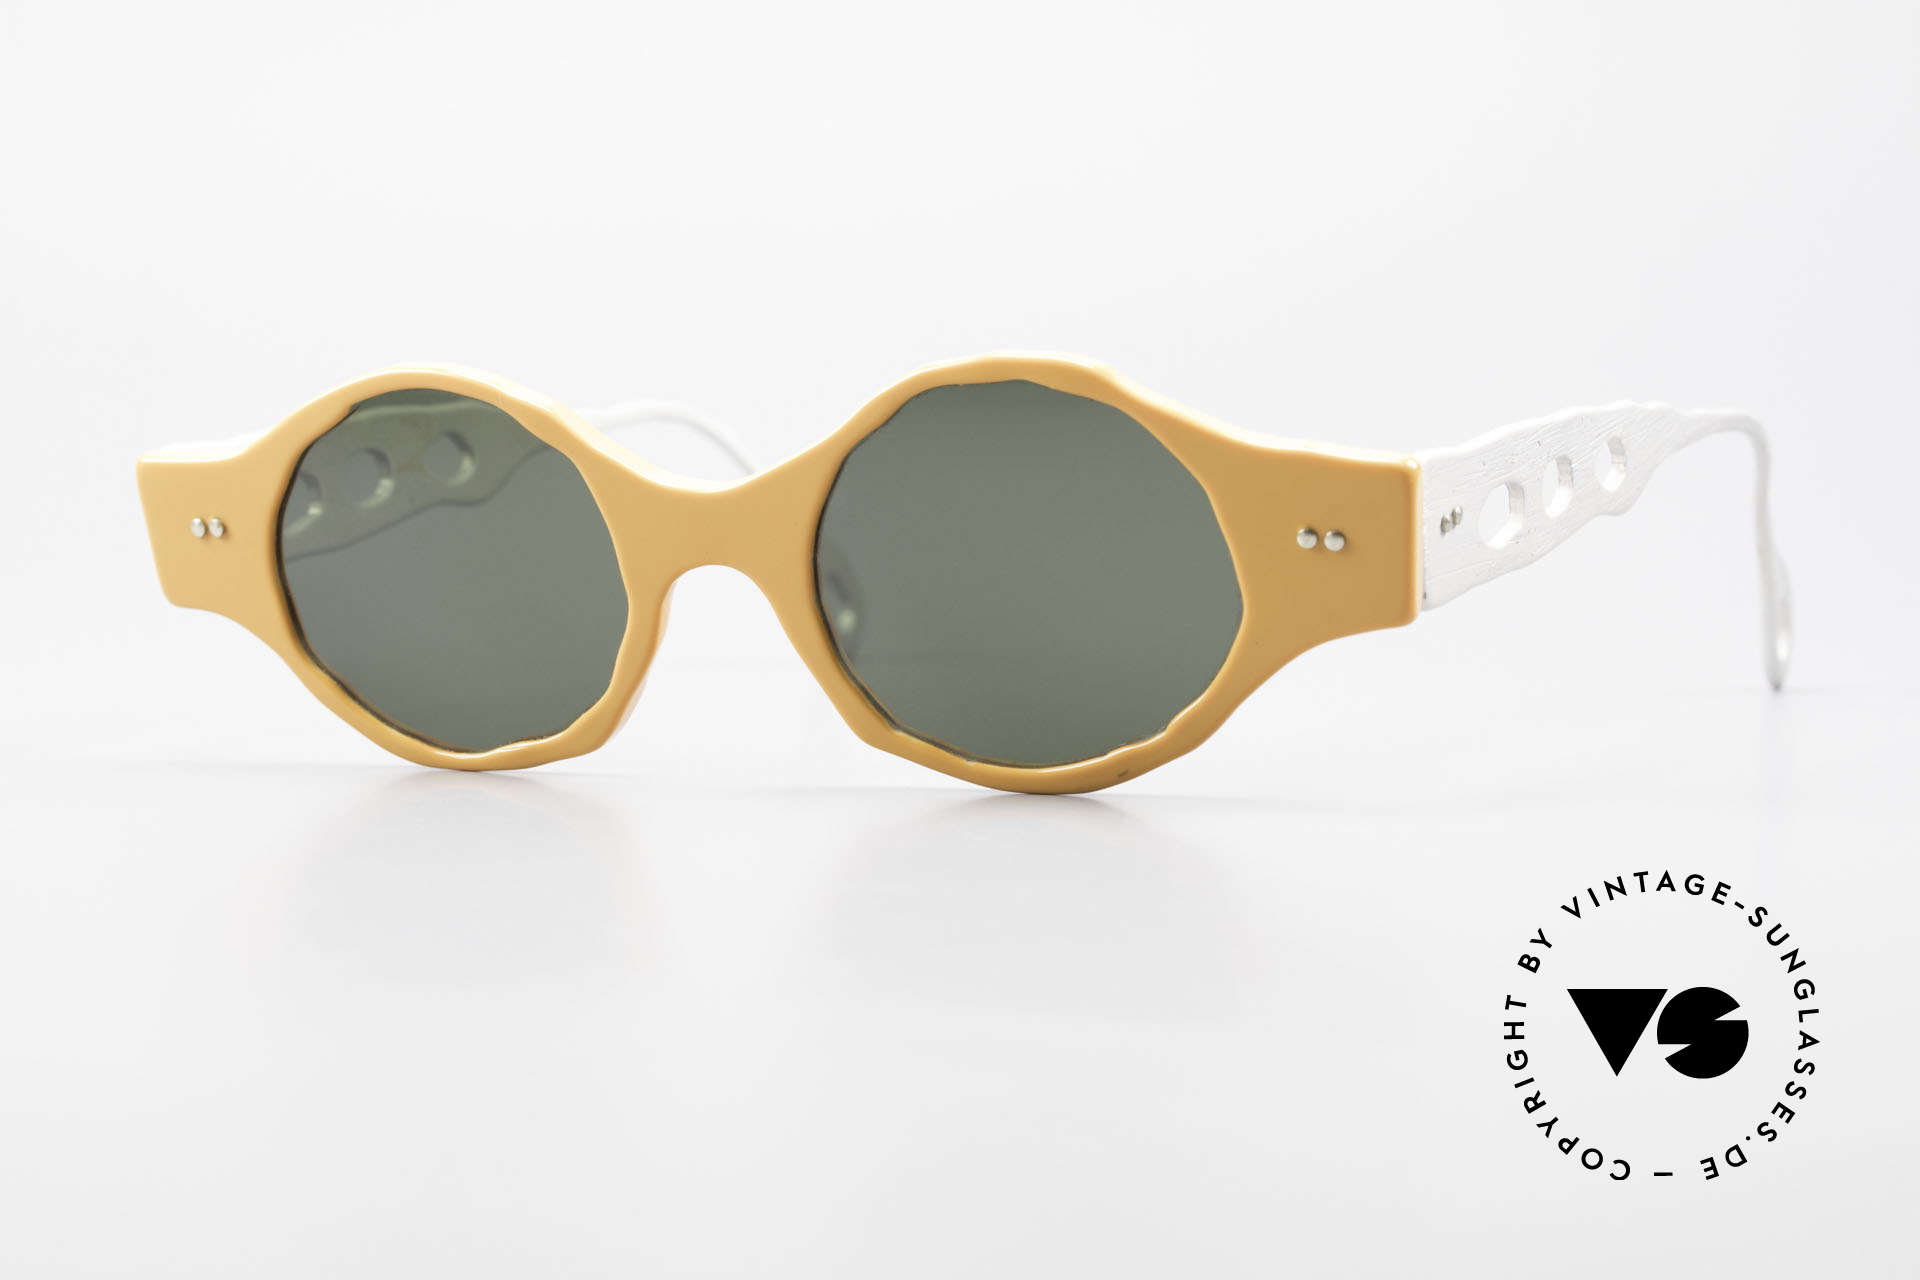 Theo Belgium Eye-Witness BK51 Avant-Garde Vintage Shades, Theo Belgium: the most self-willed brand in the world, Made for Men and Women